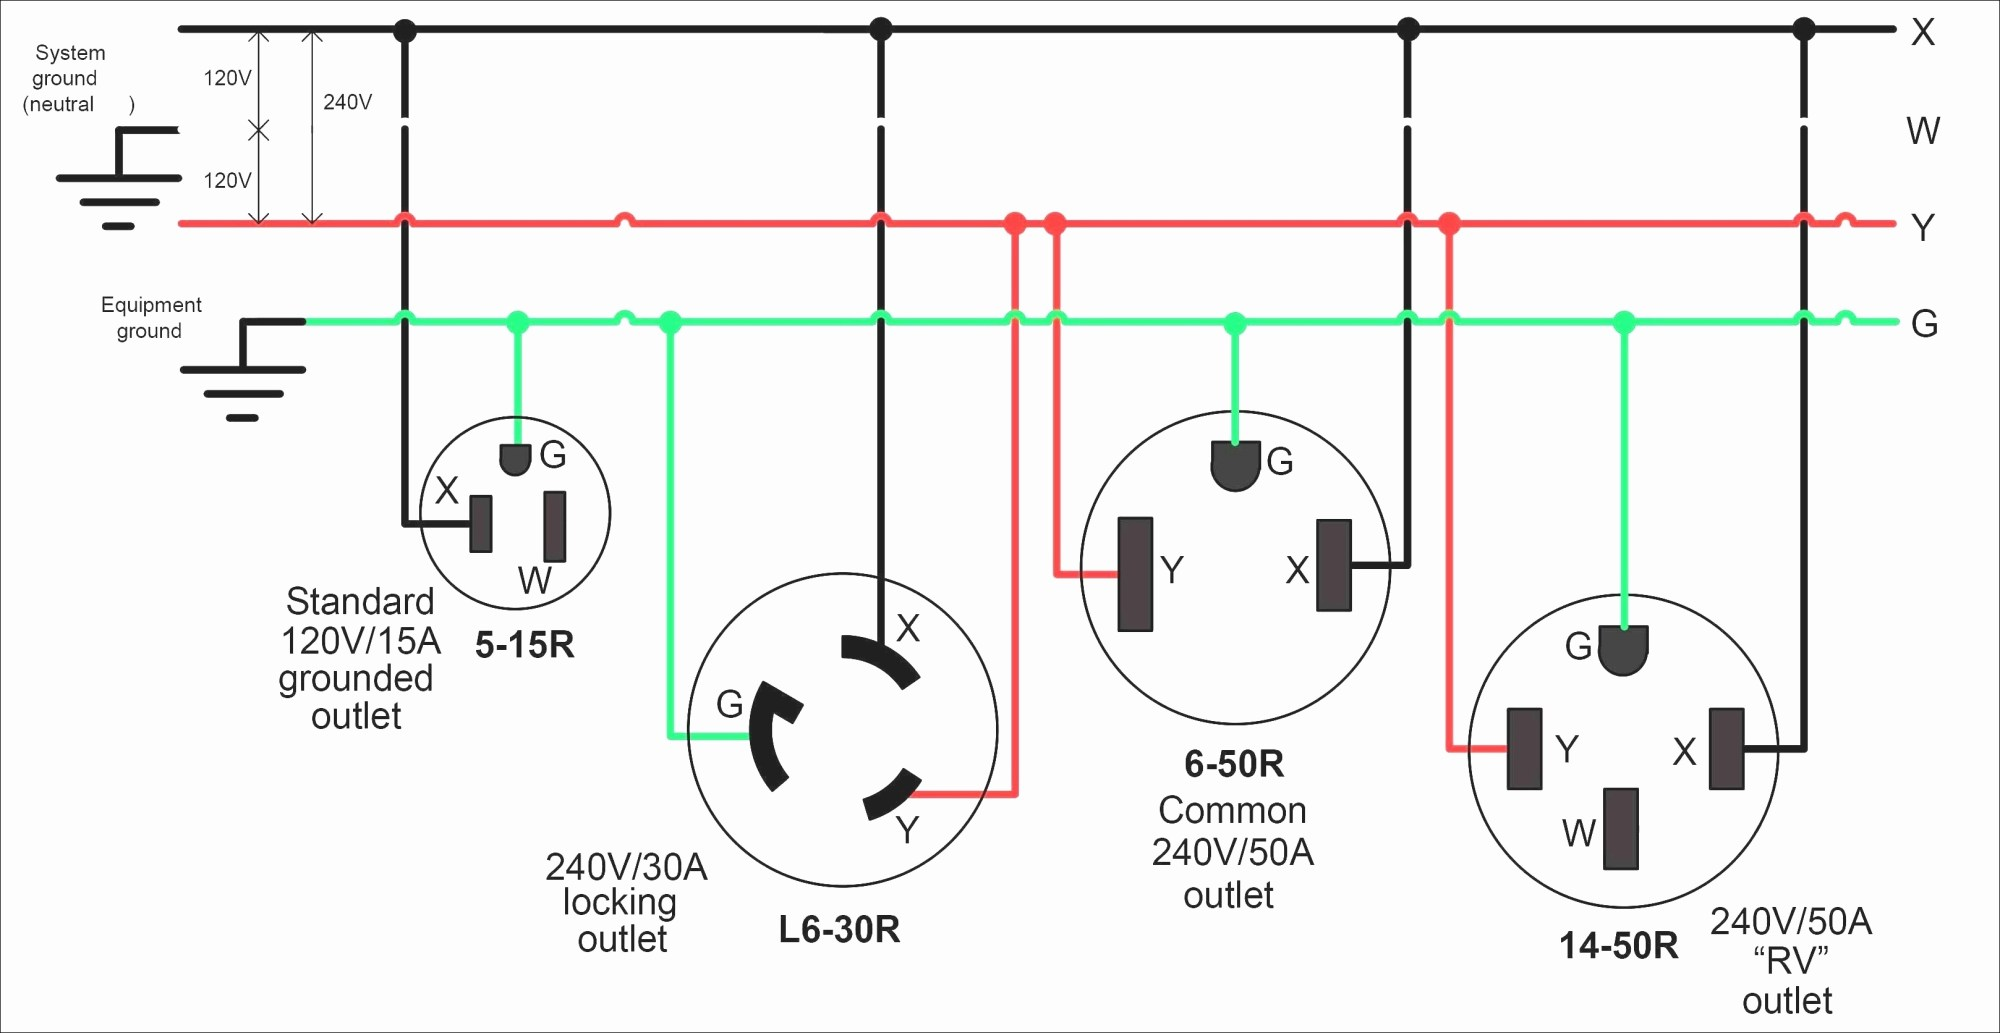 hight resolution of ethernet wall socket wiring diagram ethernet wall socket wiring diagram awesome cat 5 wiring diagram